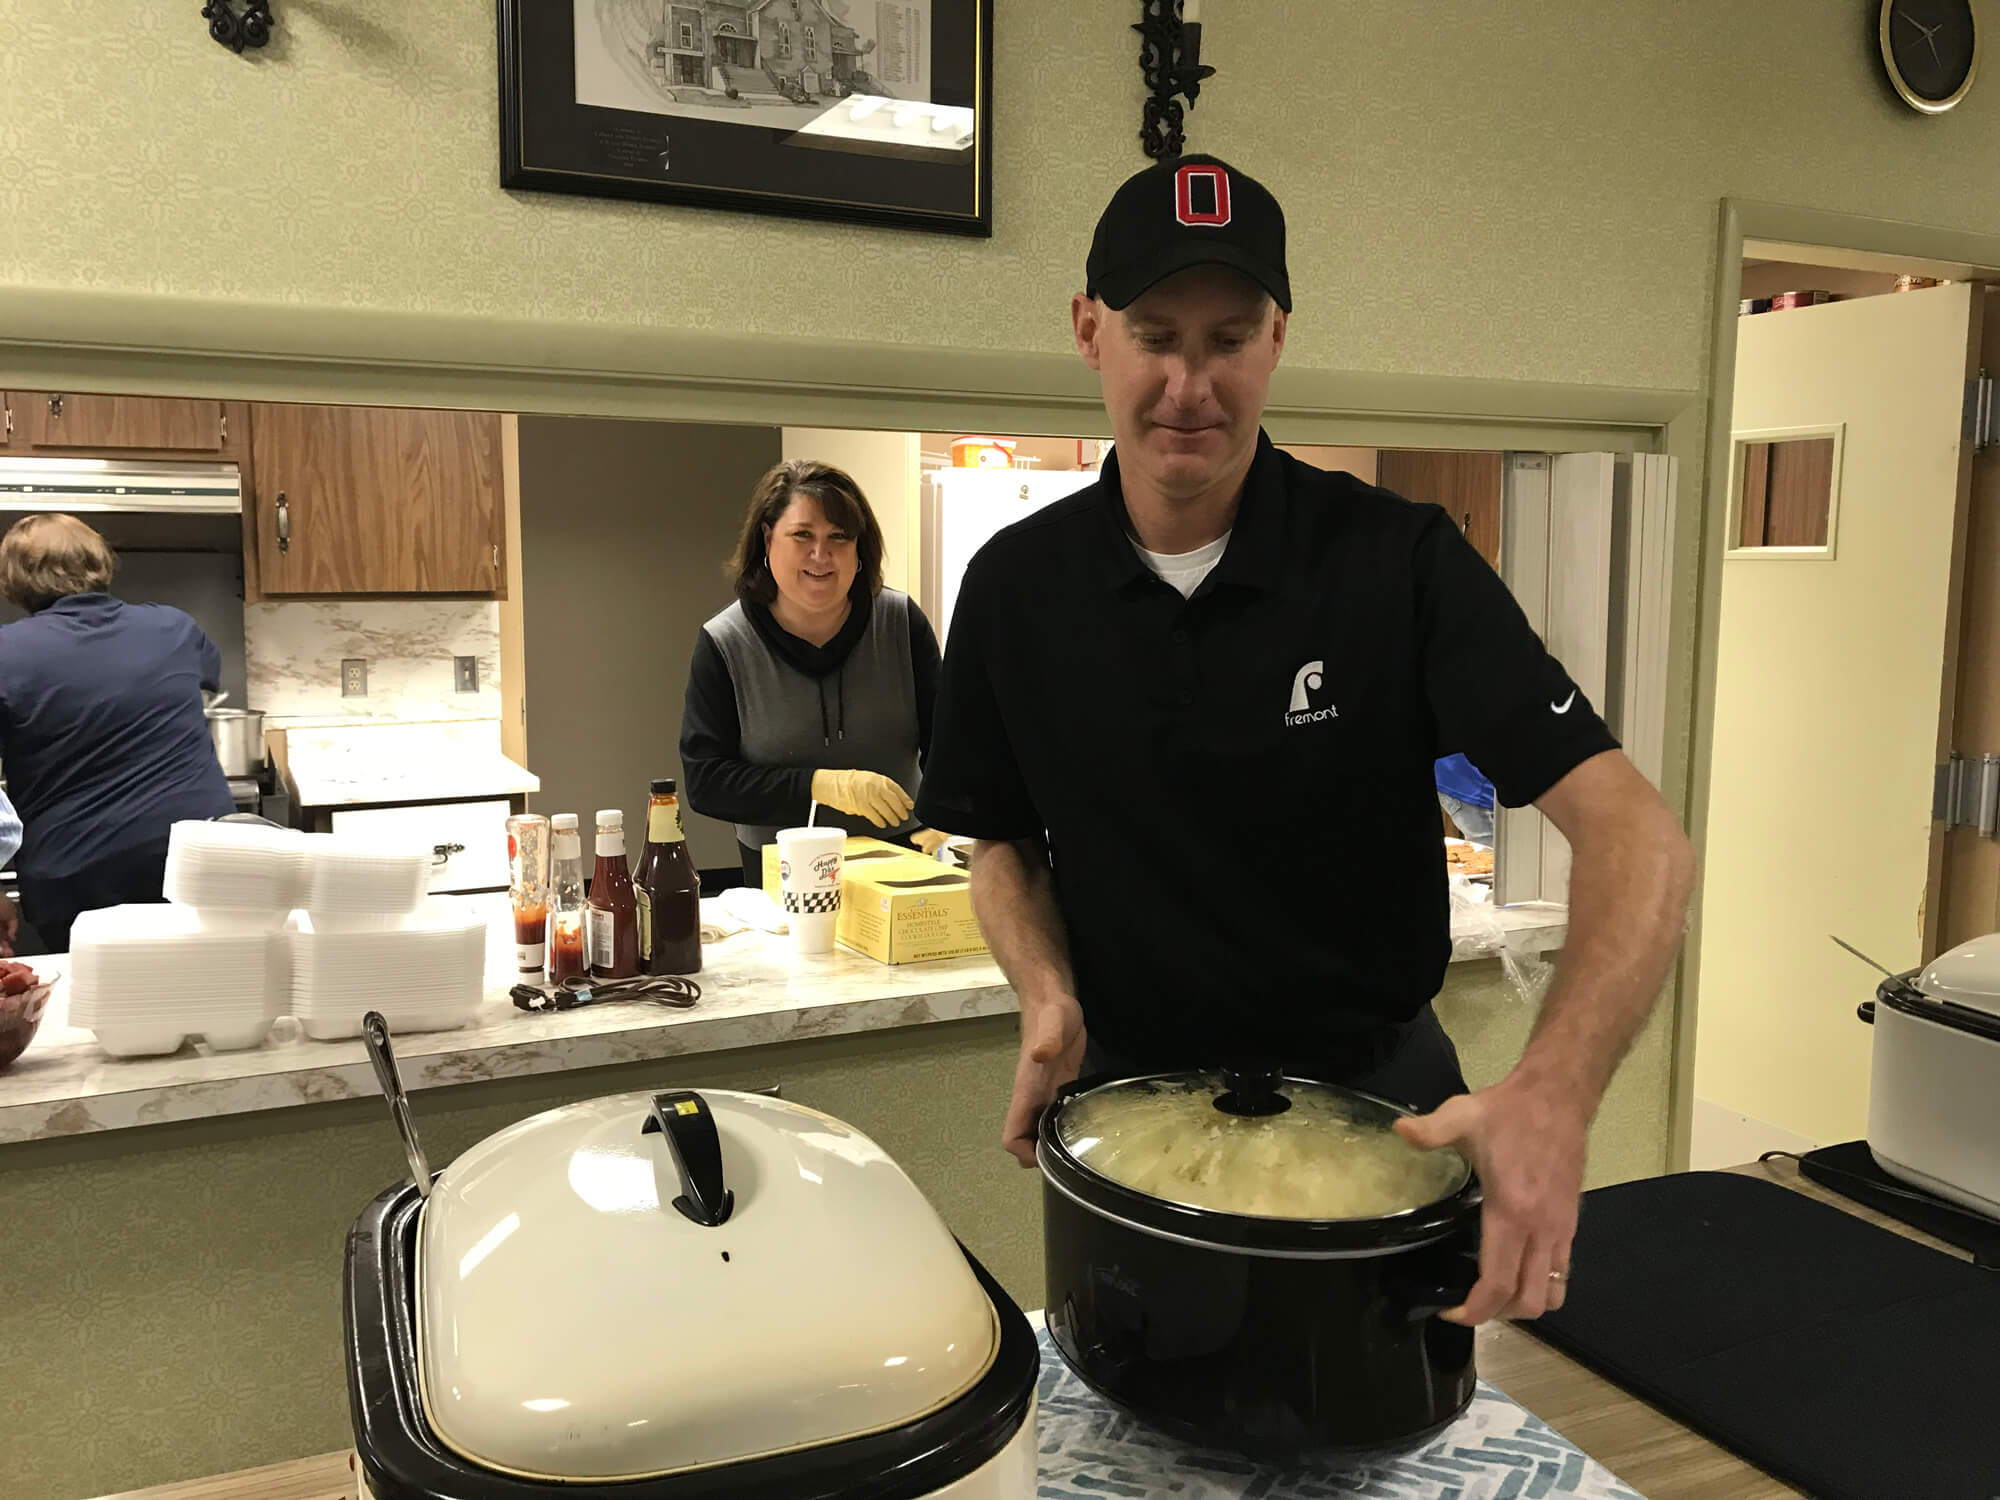 volunteering-at-rockford-united-methodist-church-making-and-serving-dinner-for-140-people-